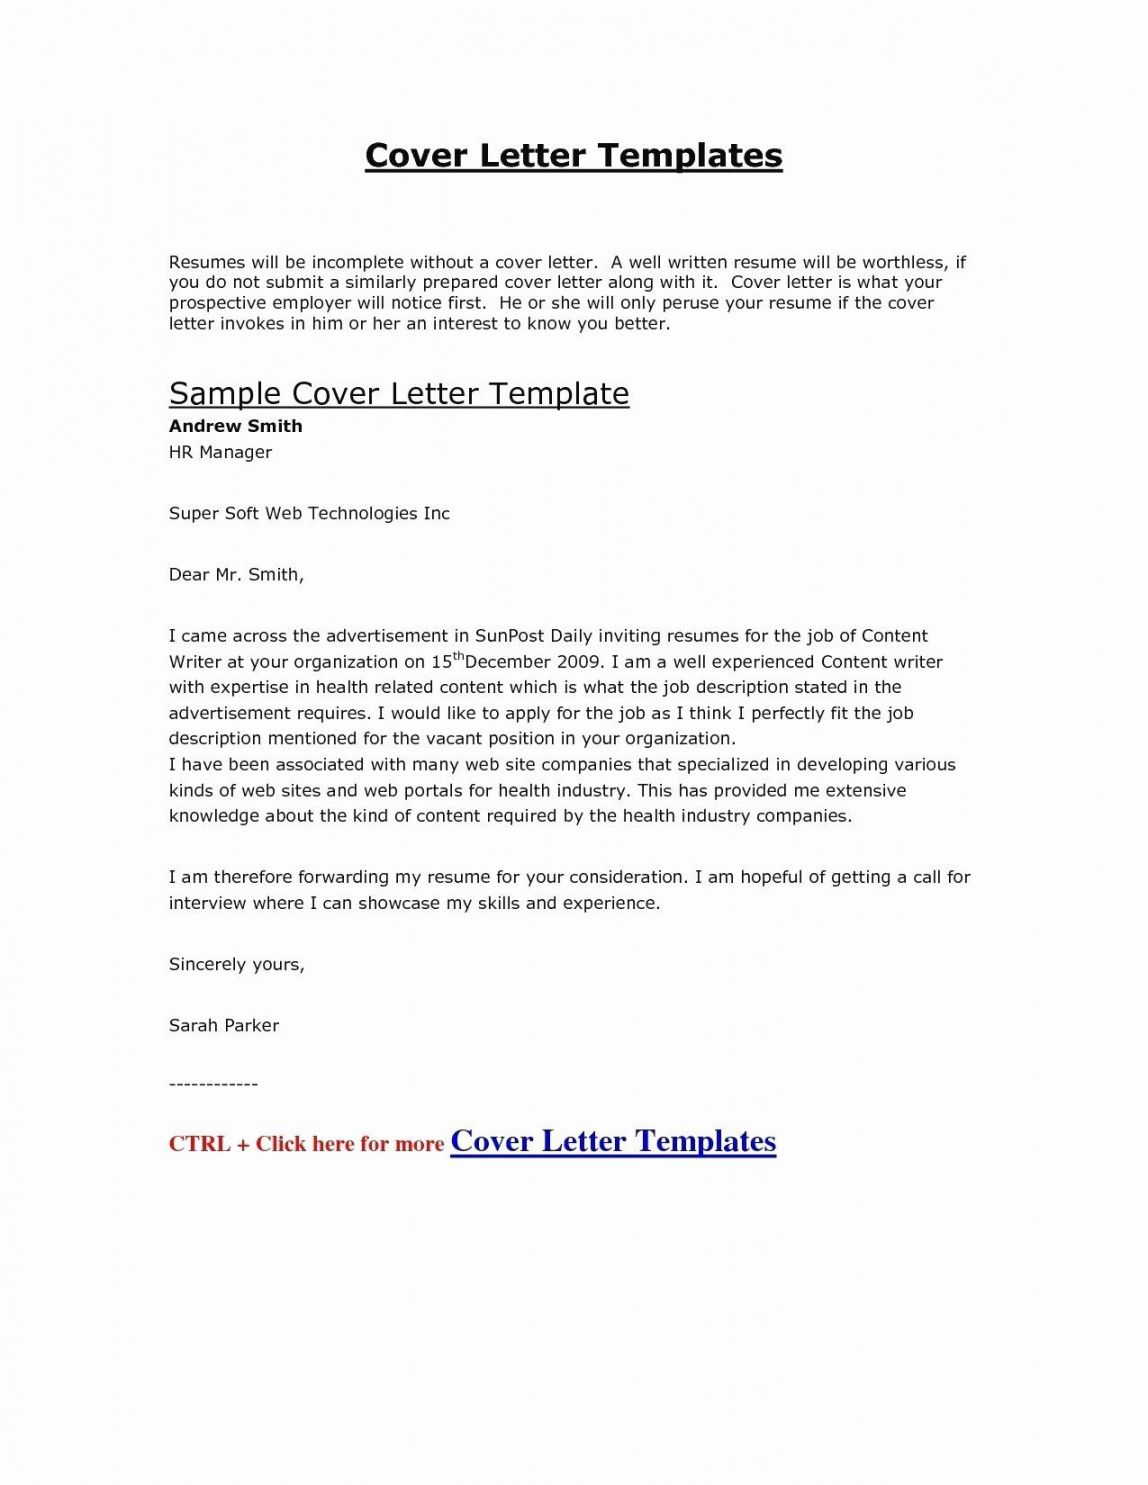 costum insolvency letter to creditors template excel example